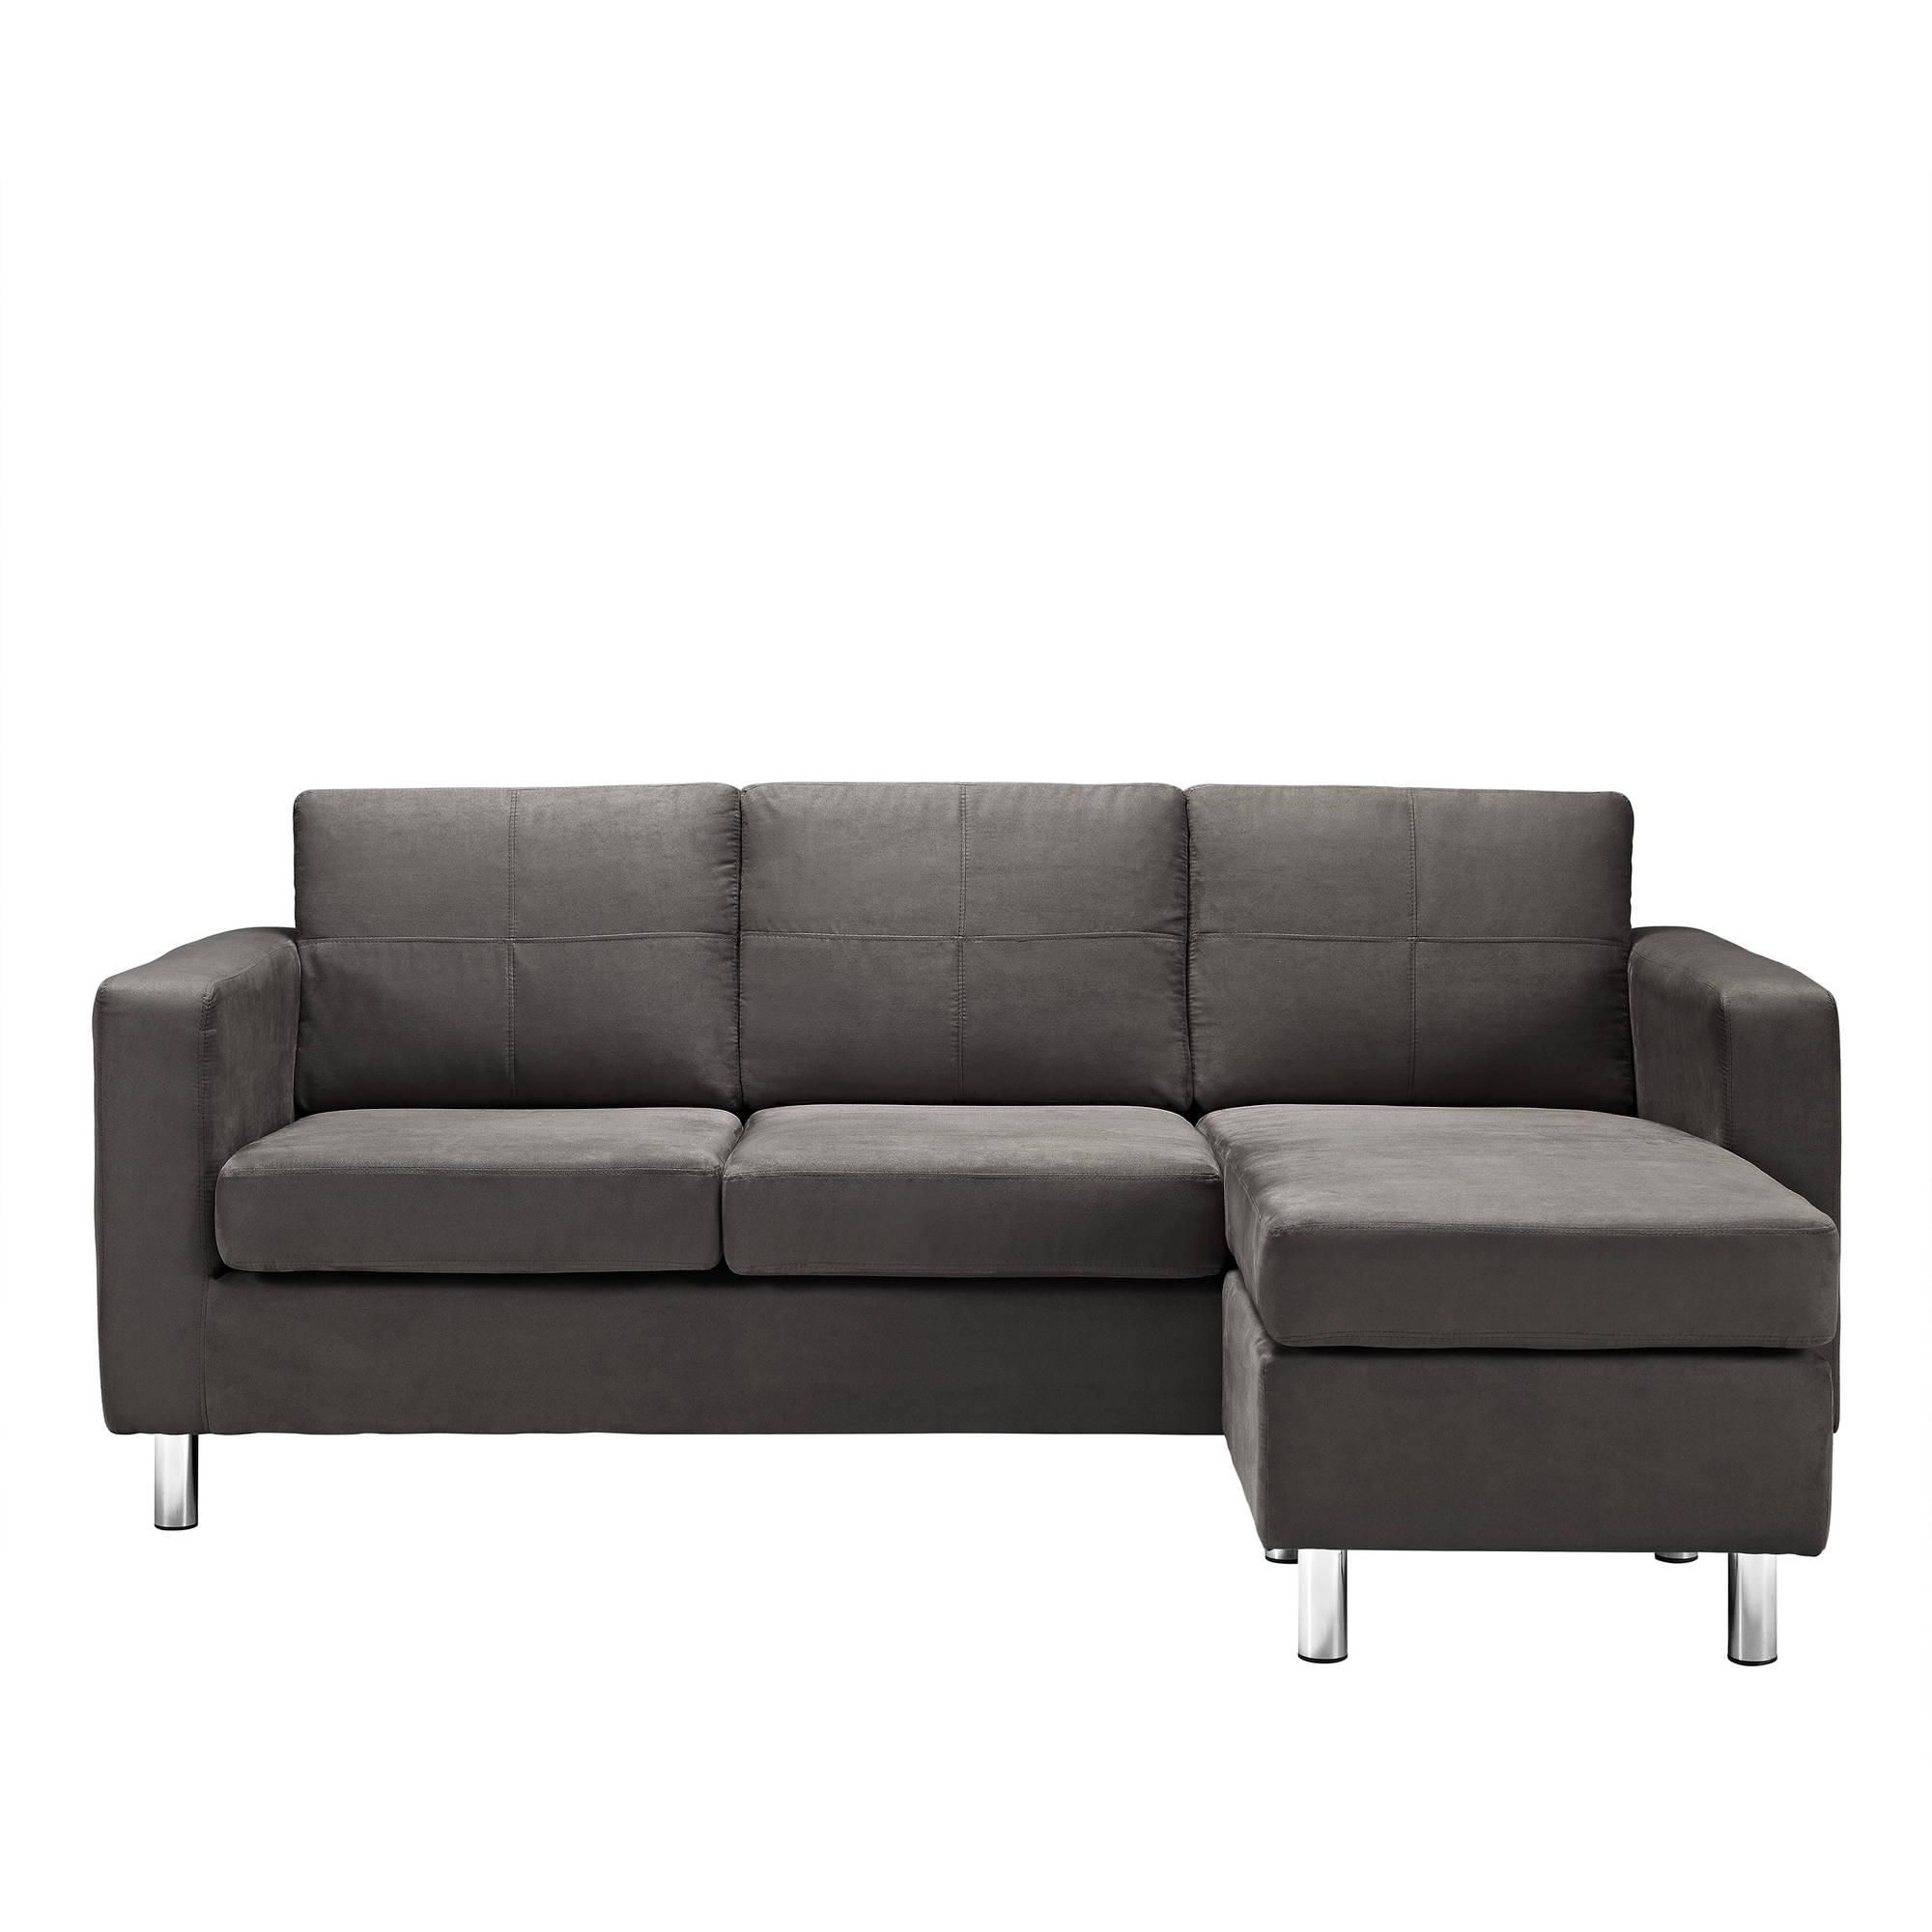 Dorel Living Small Spaces Configurable Sectional Sofa, Multiple Throughout Sectionals For Apartments (View 6 of 20)